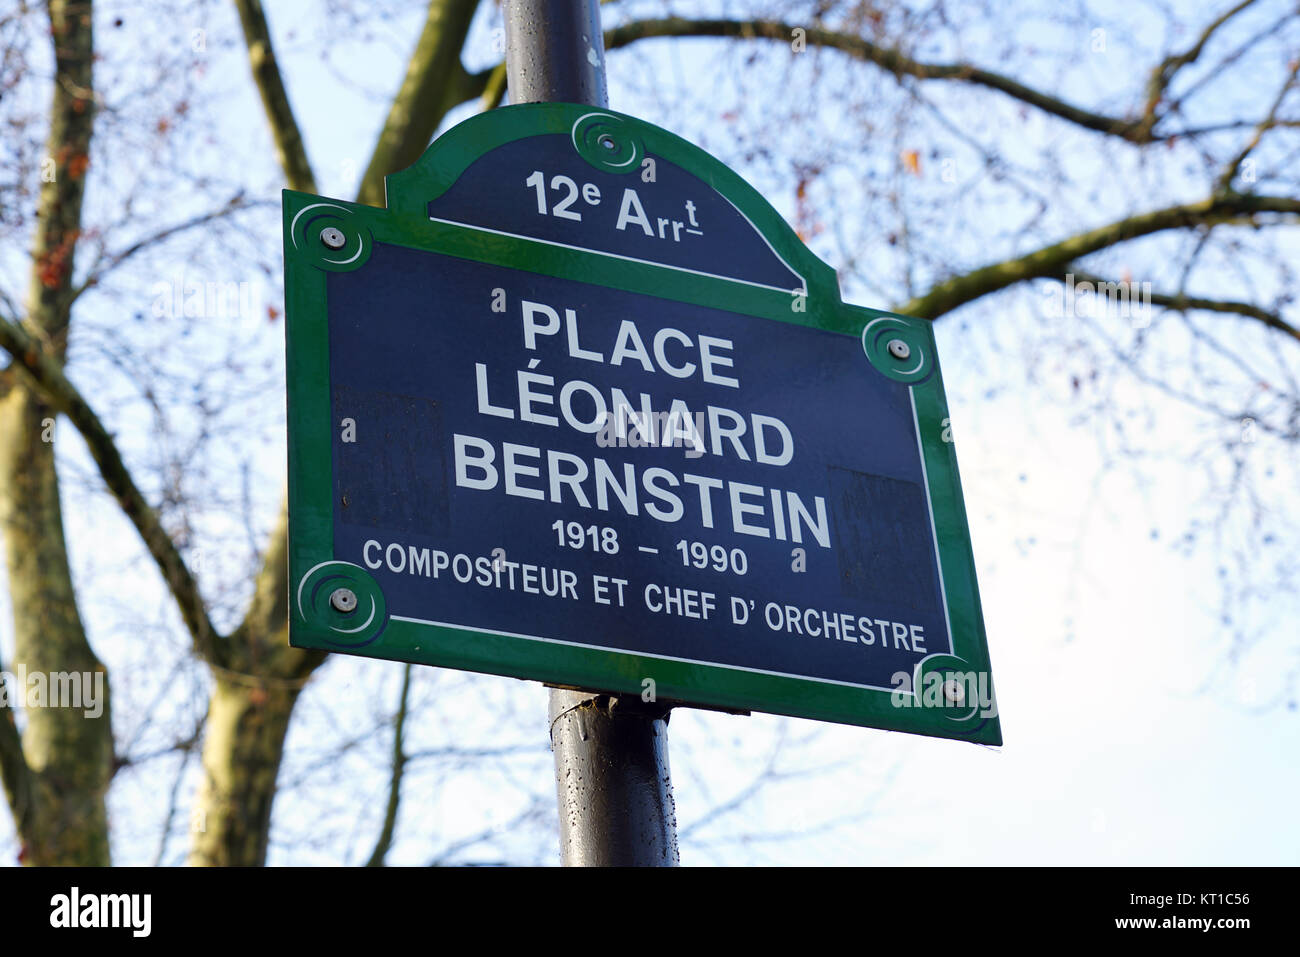 View of the Parc de Bercy, a public garden located in the Bercy neighborhood on the right bank in Paris, France. - Stock Image